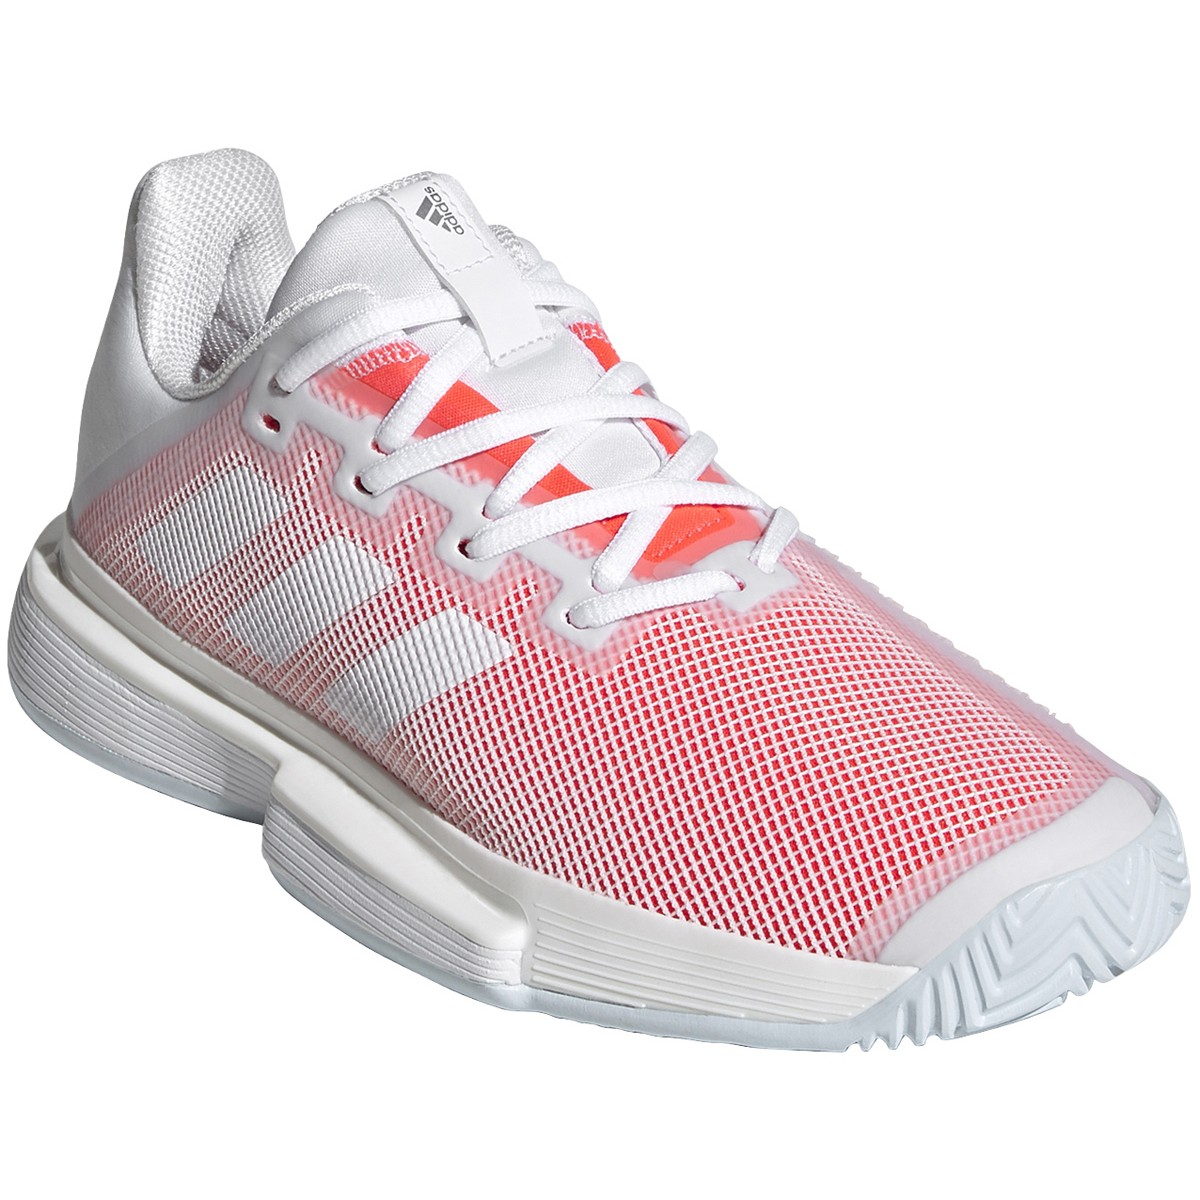 WOMEN'S ADIDAS SOLEMATCH BOUNCE ALL COURT SHOES - ADIDAS - Women's ...